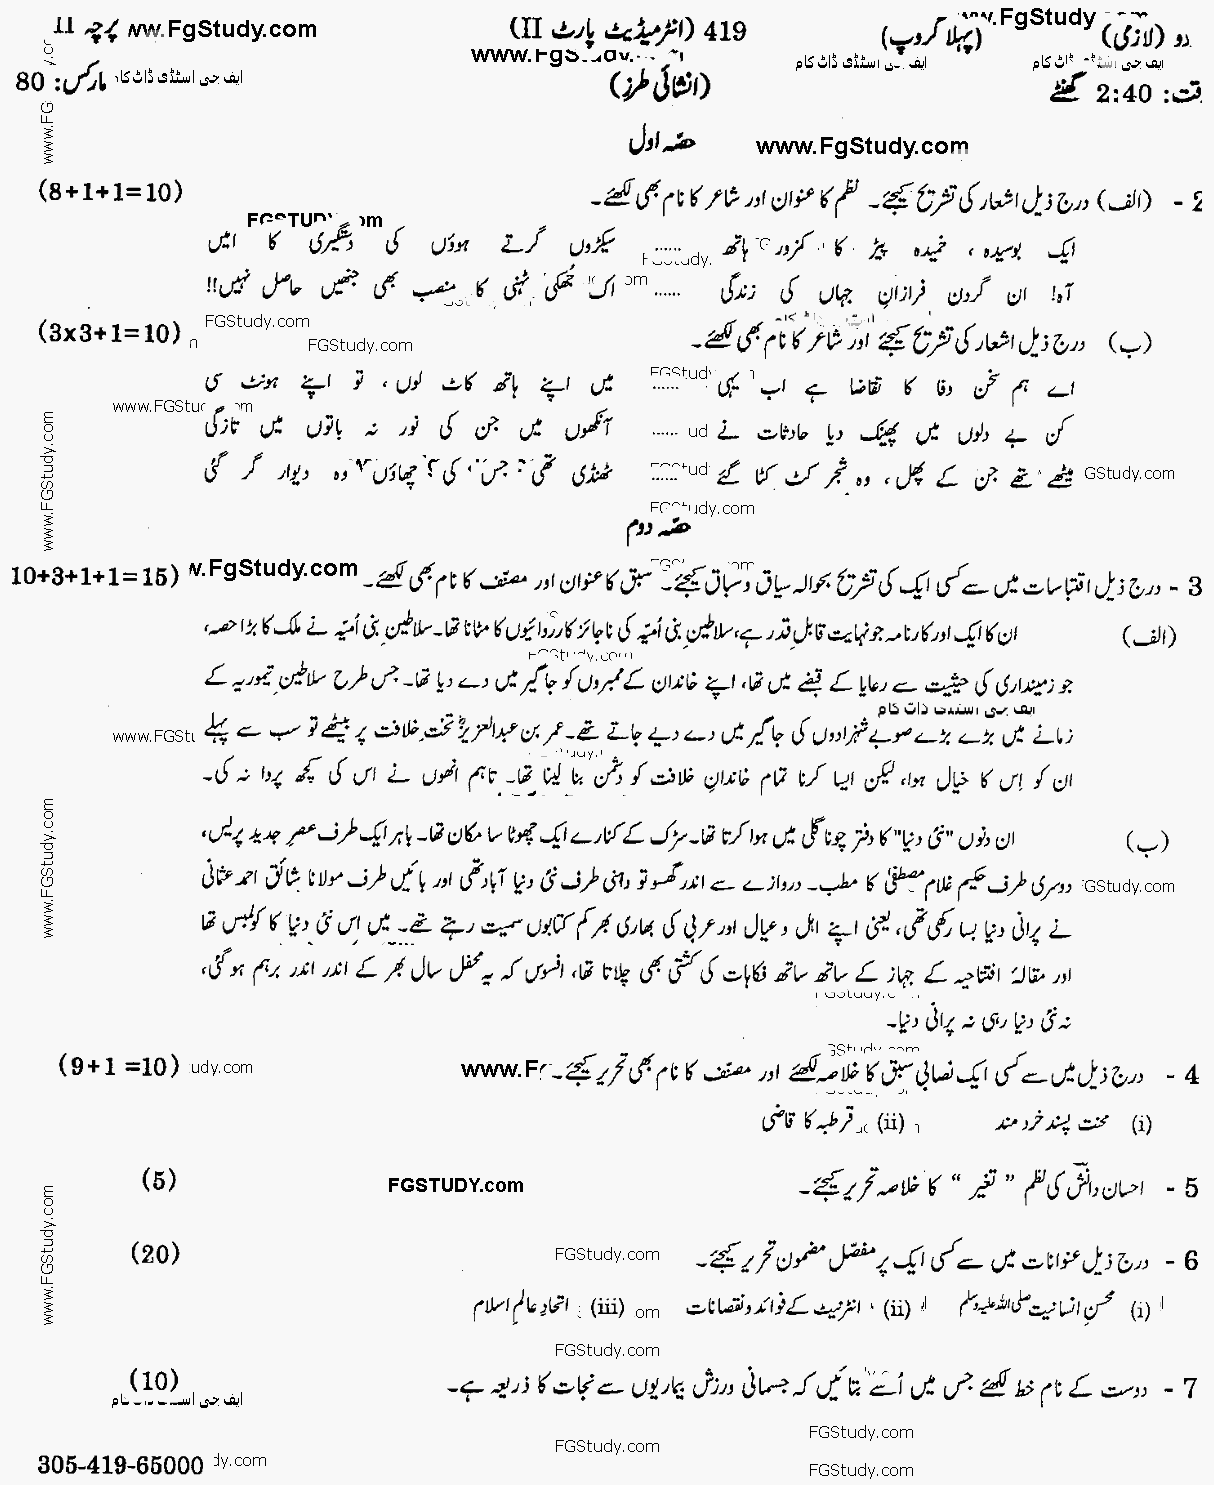 Urdu Subjective Group 1 12th Class Past Papers 2019